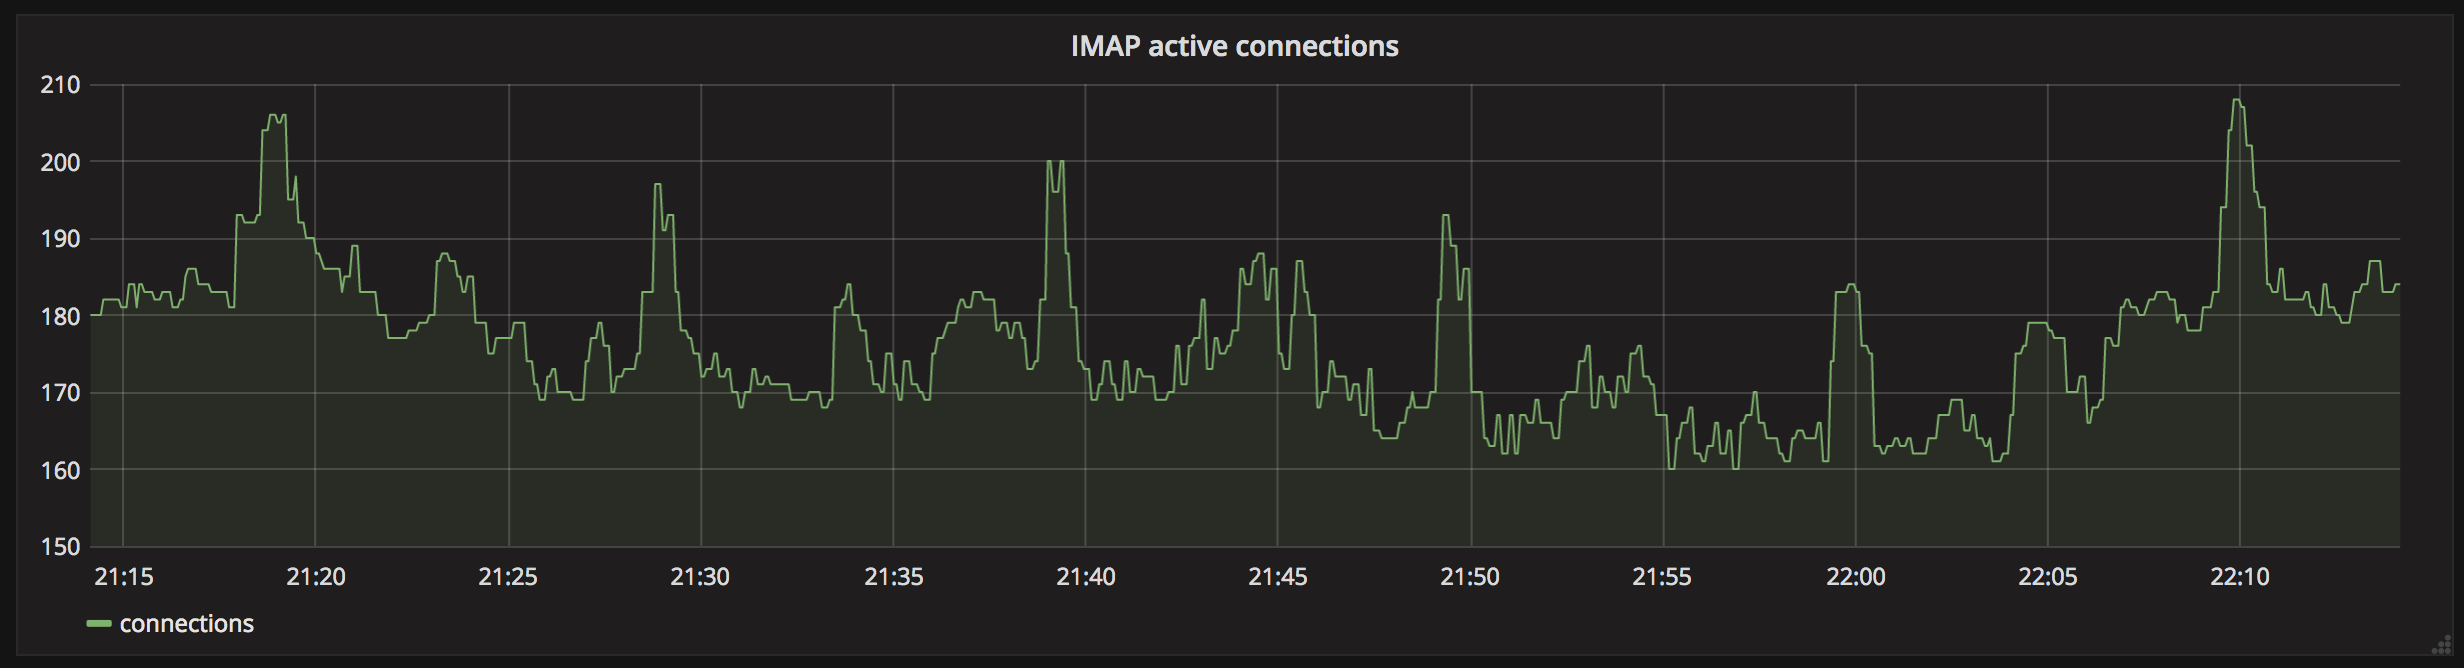 Grafana IMAP connection graph